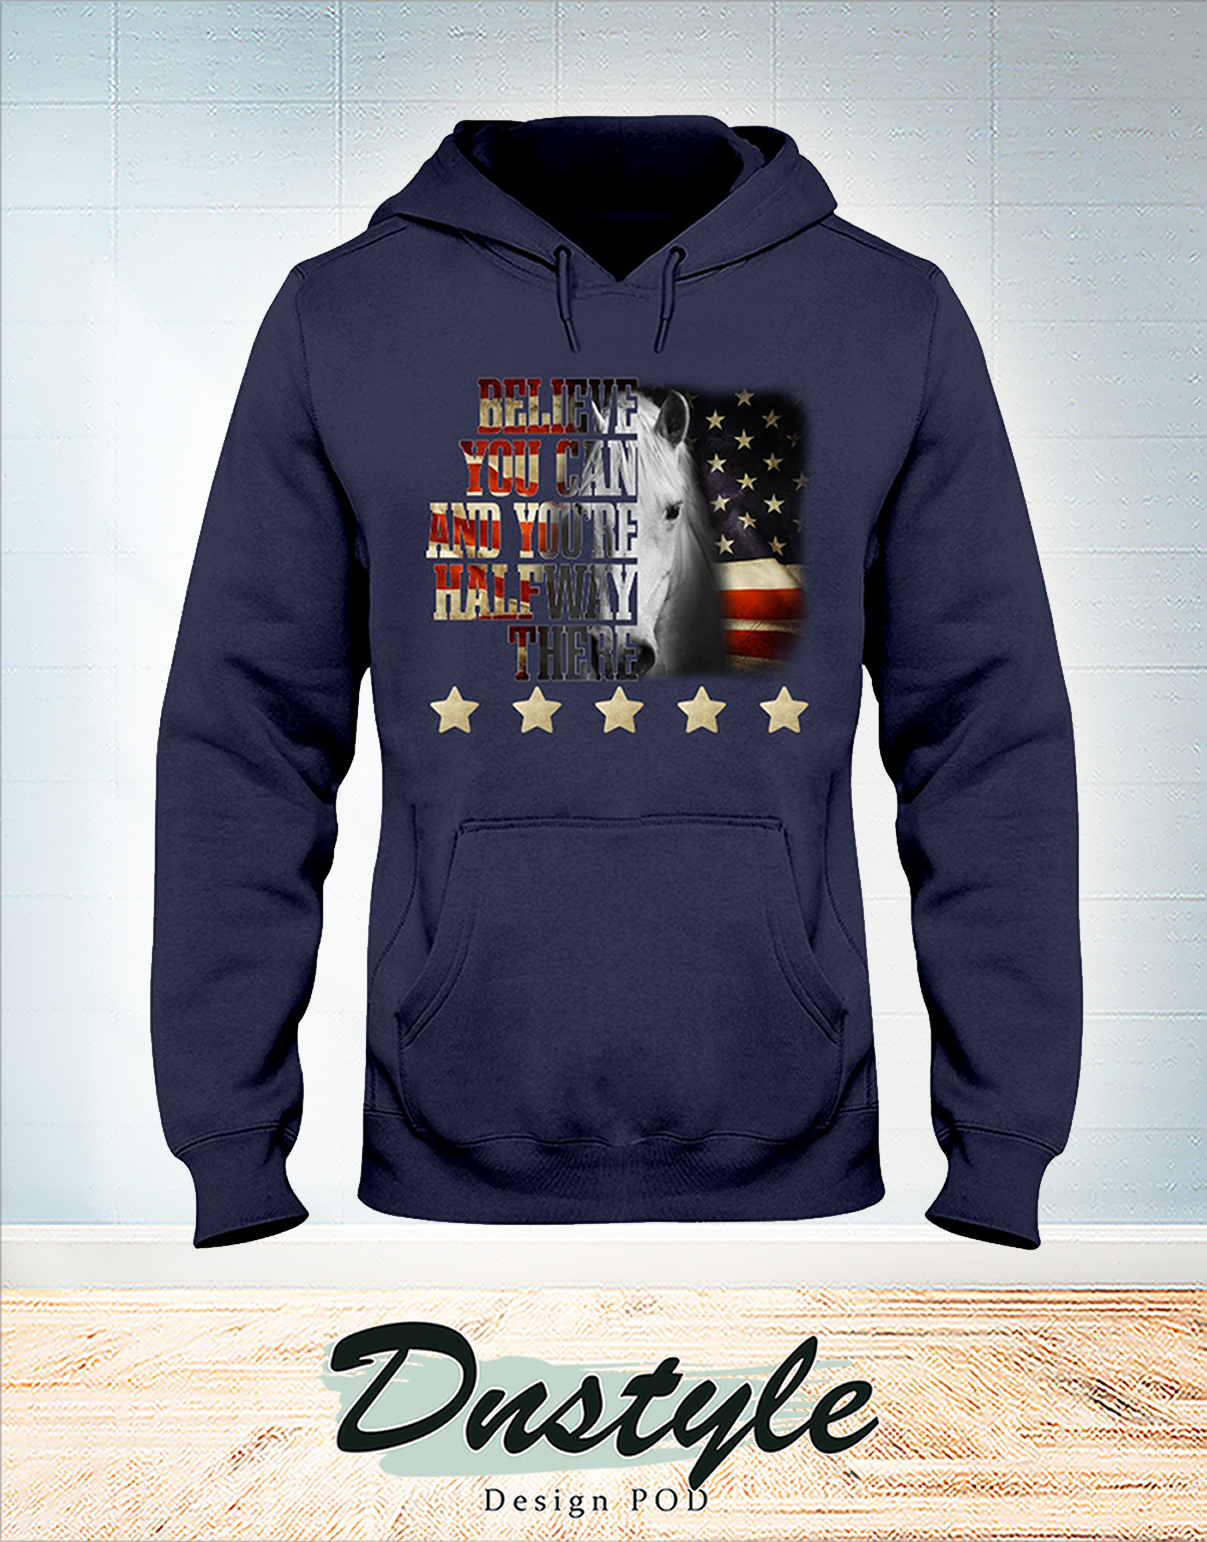 Horse five star force believe you can and you're halfway there hoodie